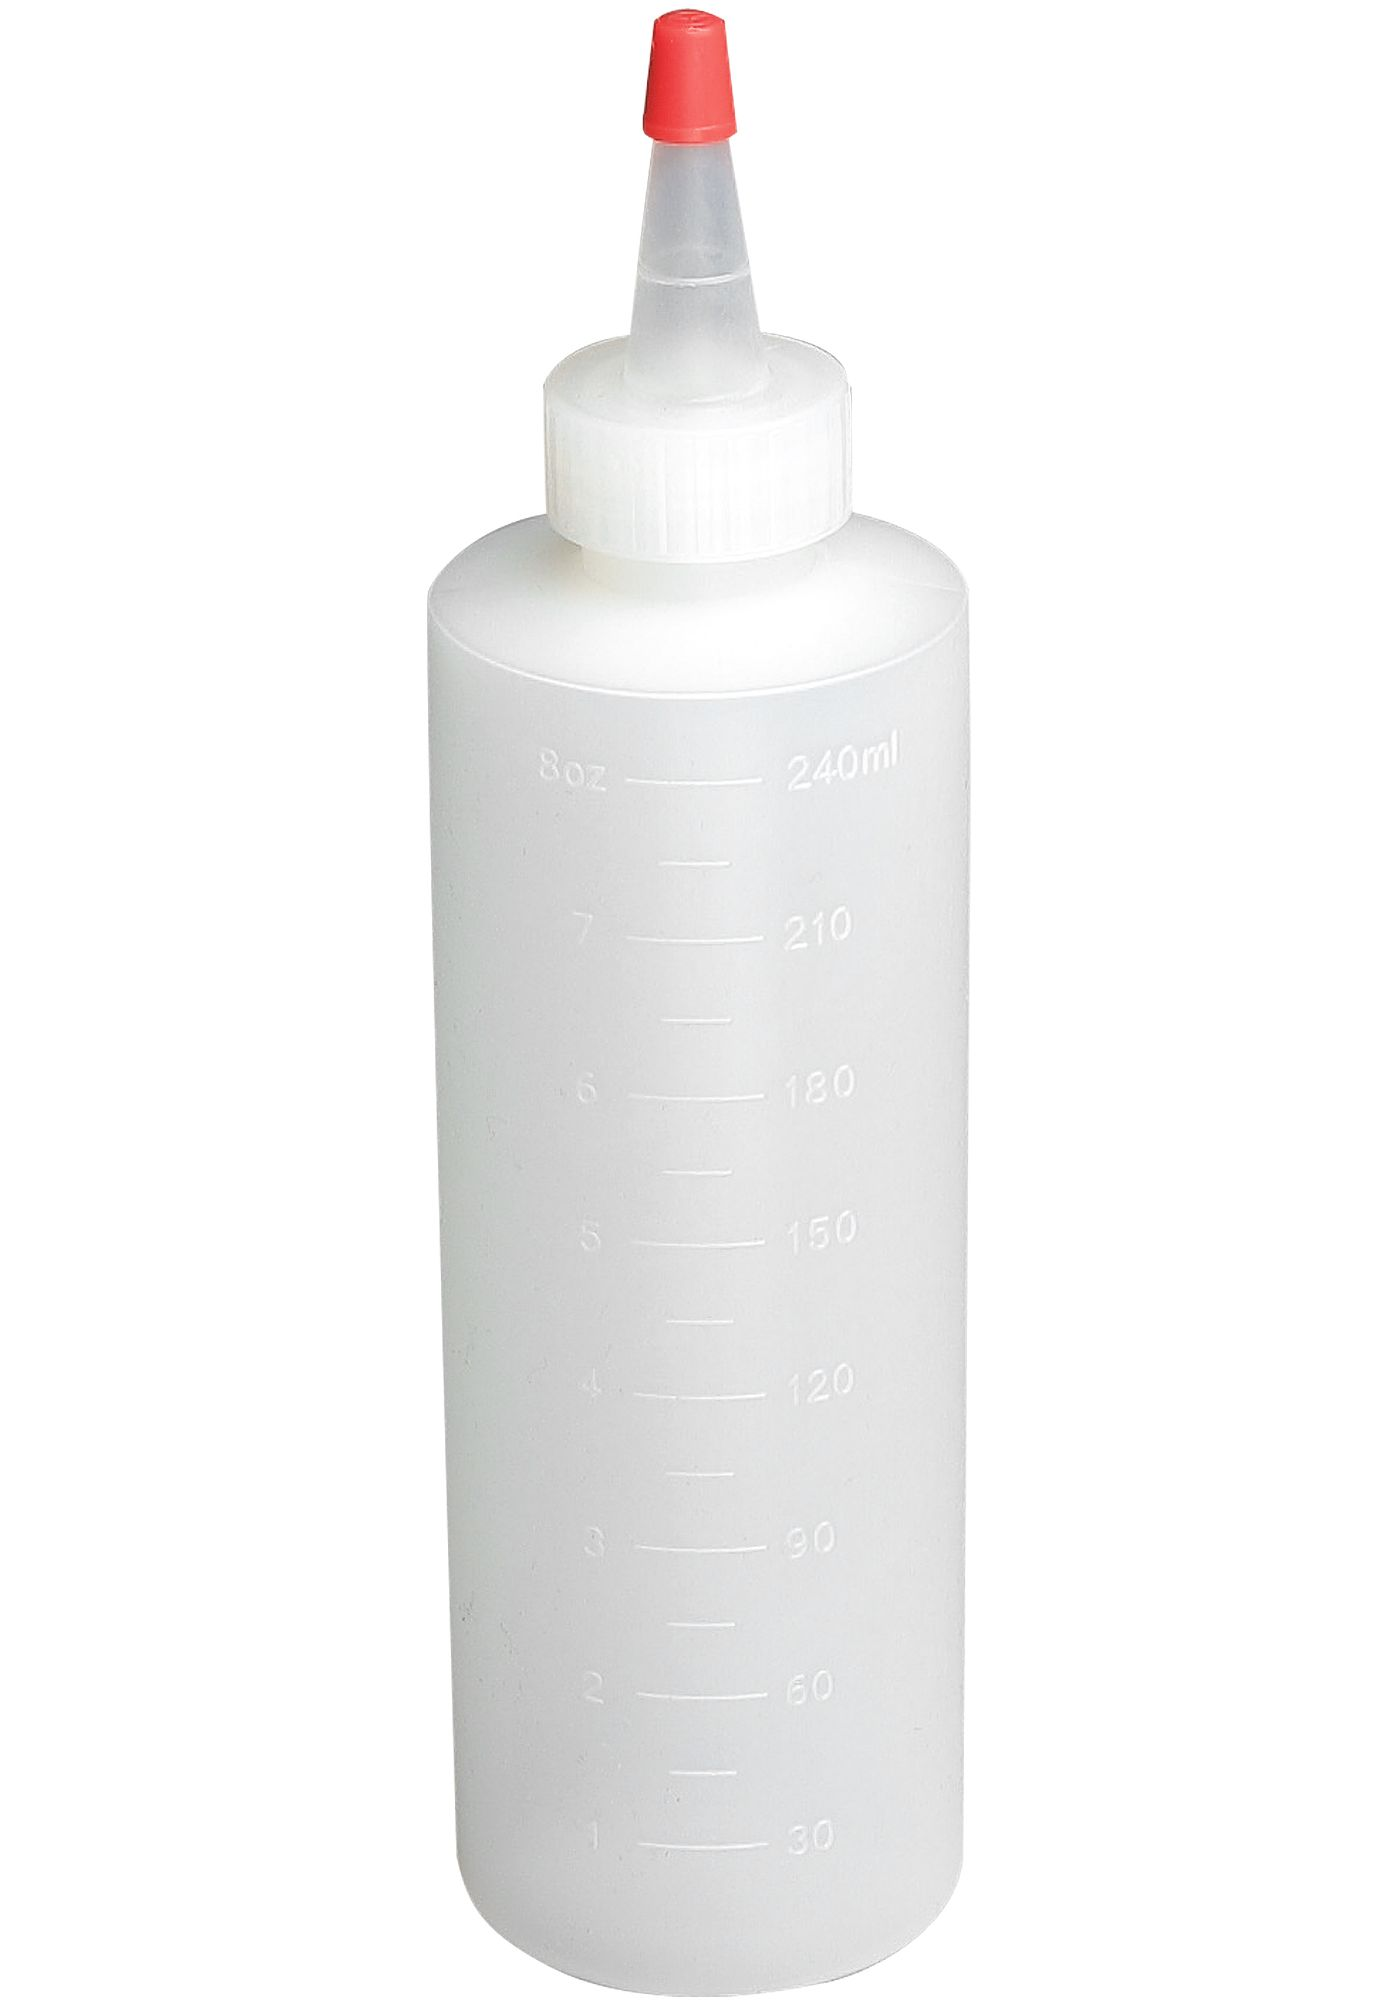 The GolfWorks Plastic Squeeze Solvent Bottle